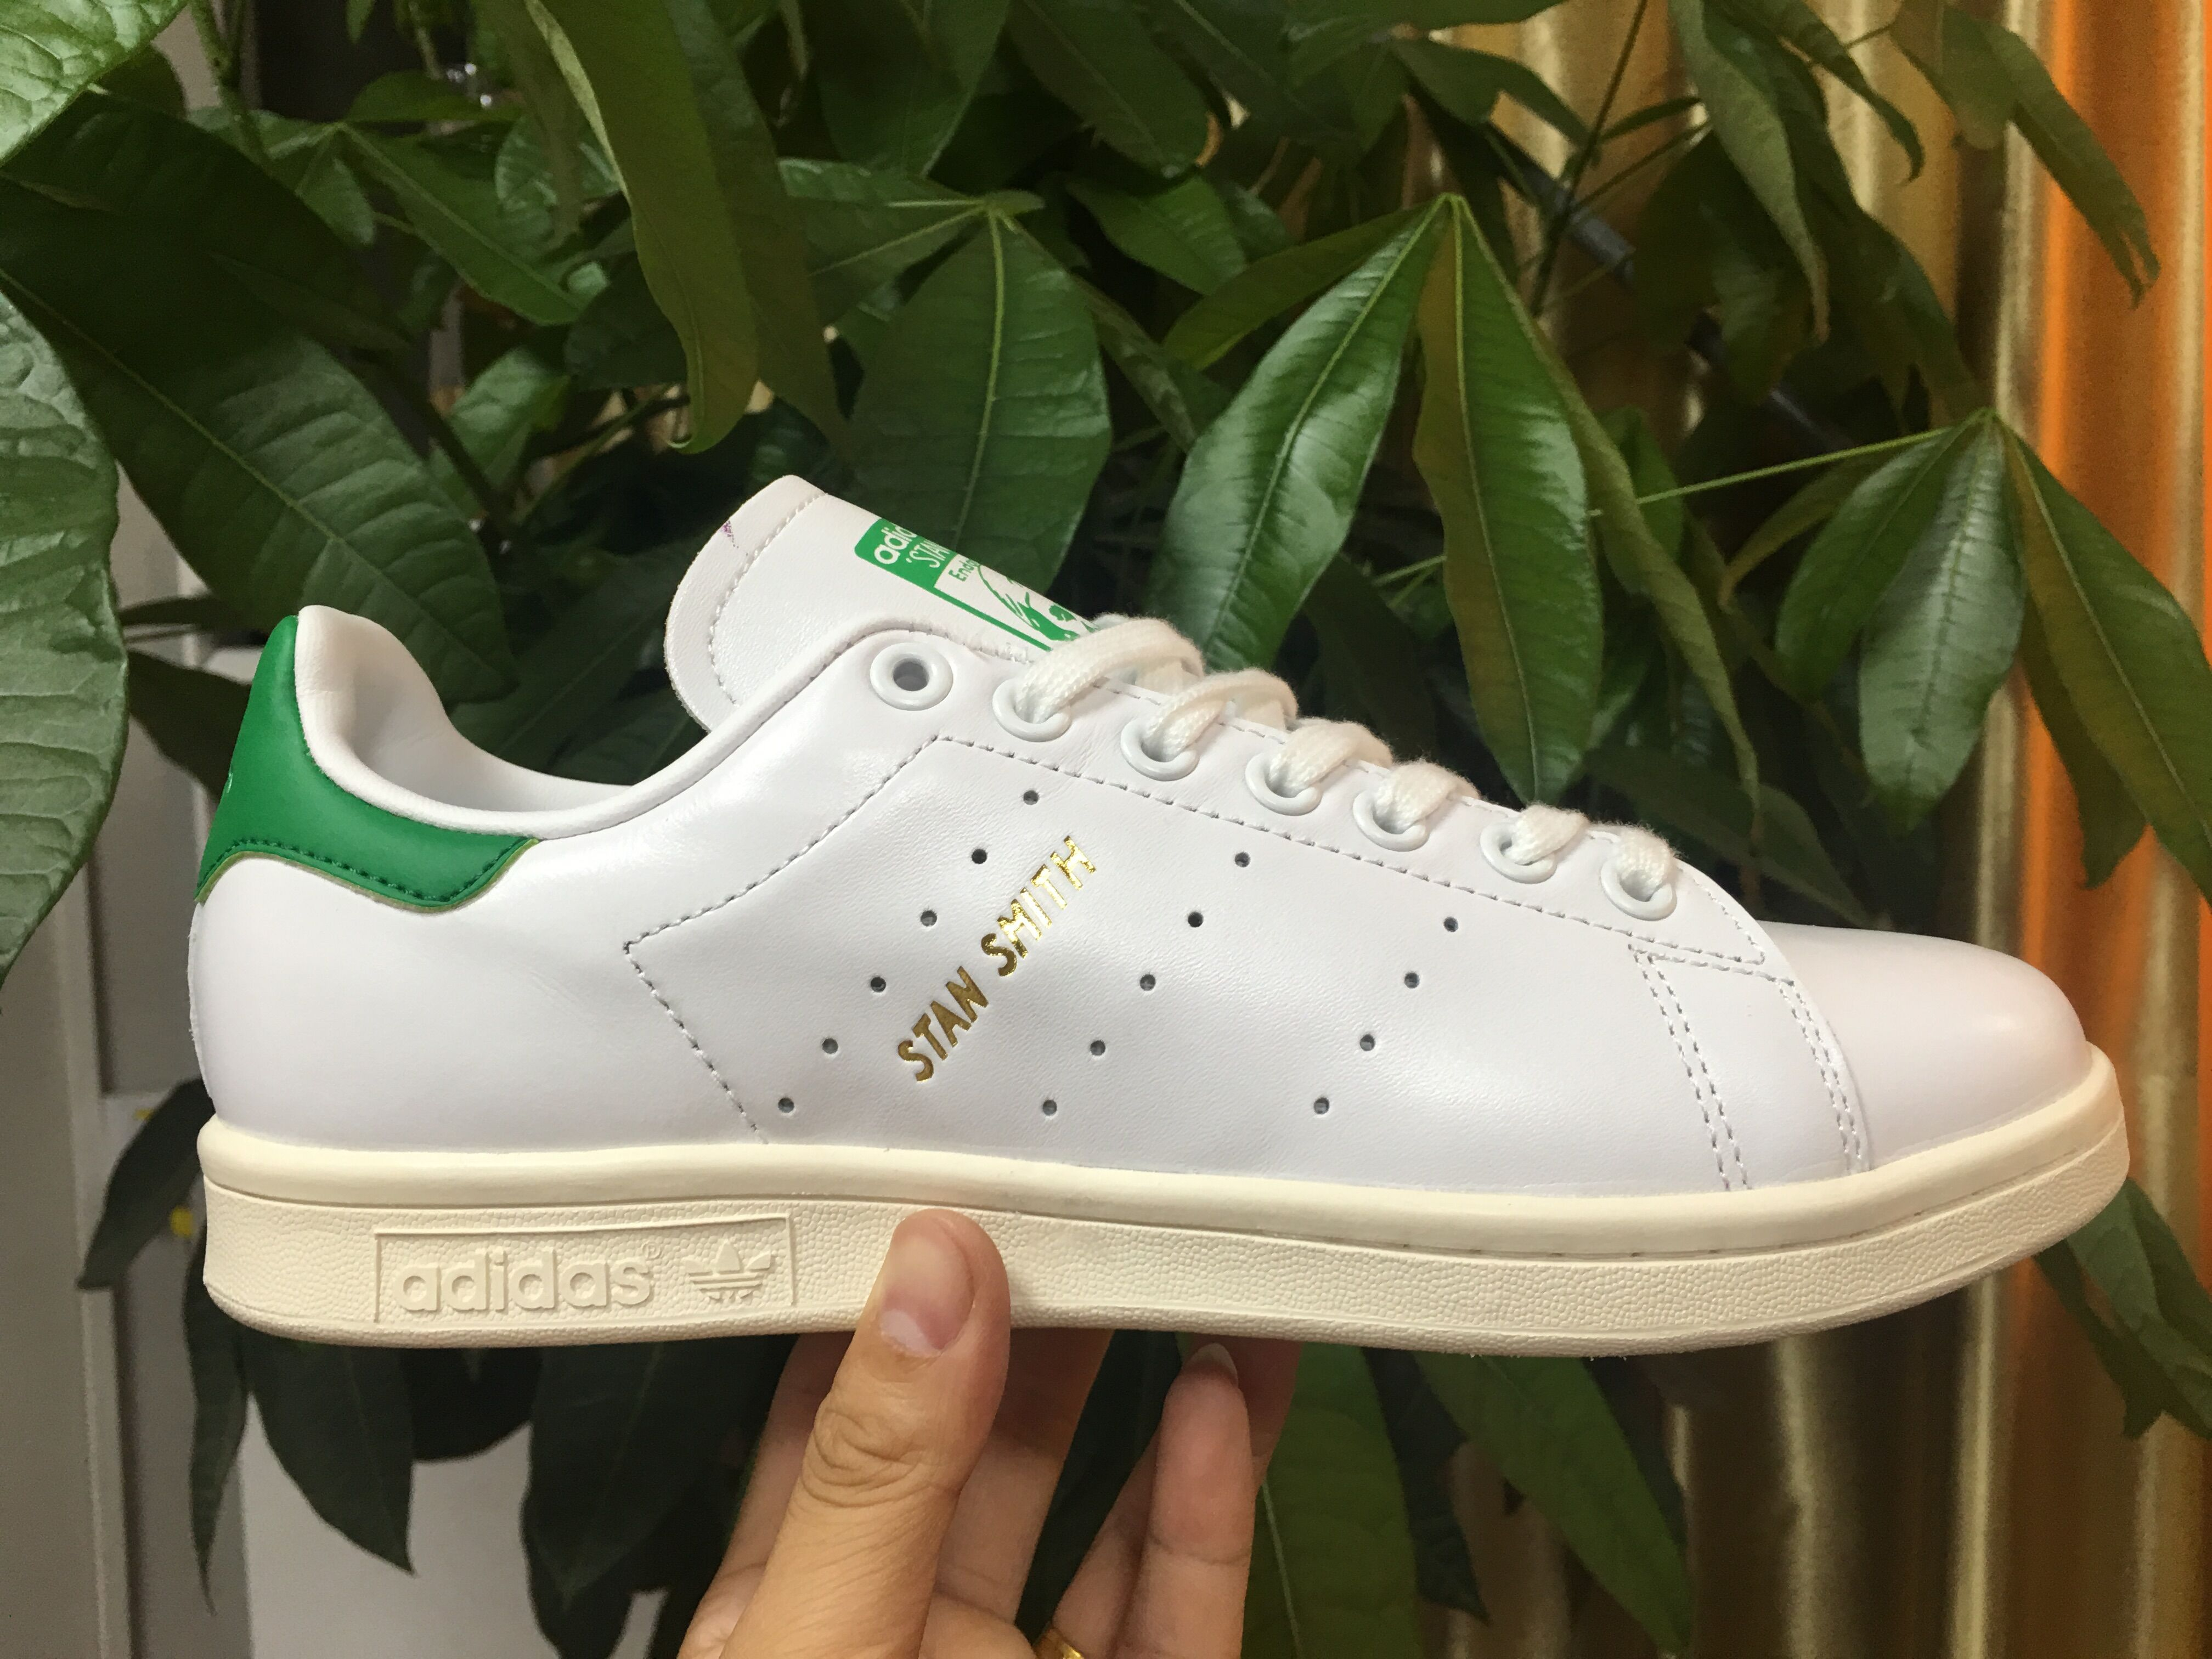 Adidas STAN SMITH S75074 35-44 Item NO: 286721